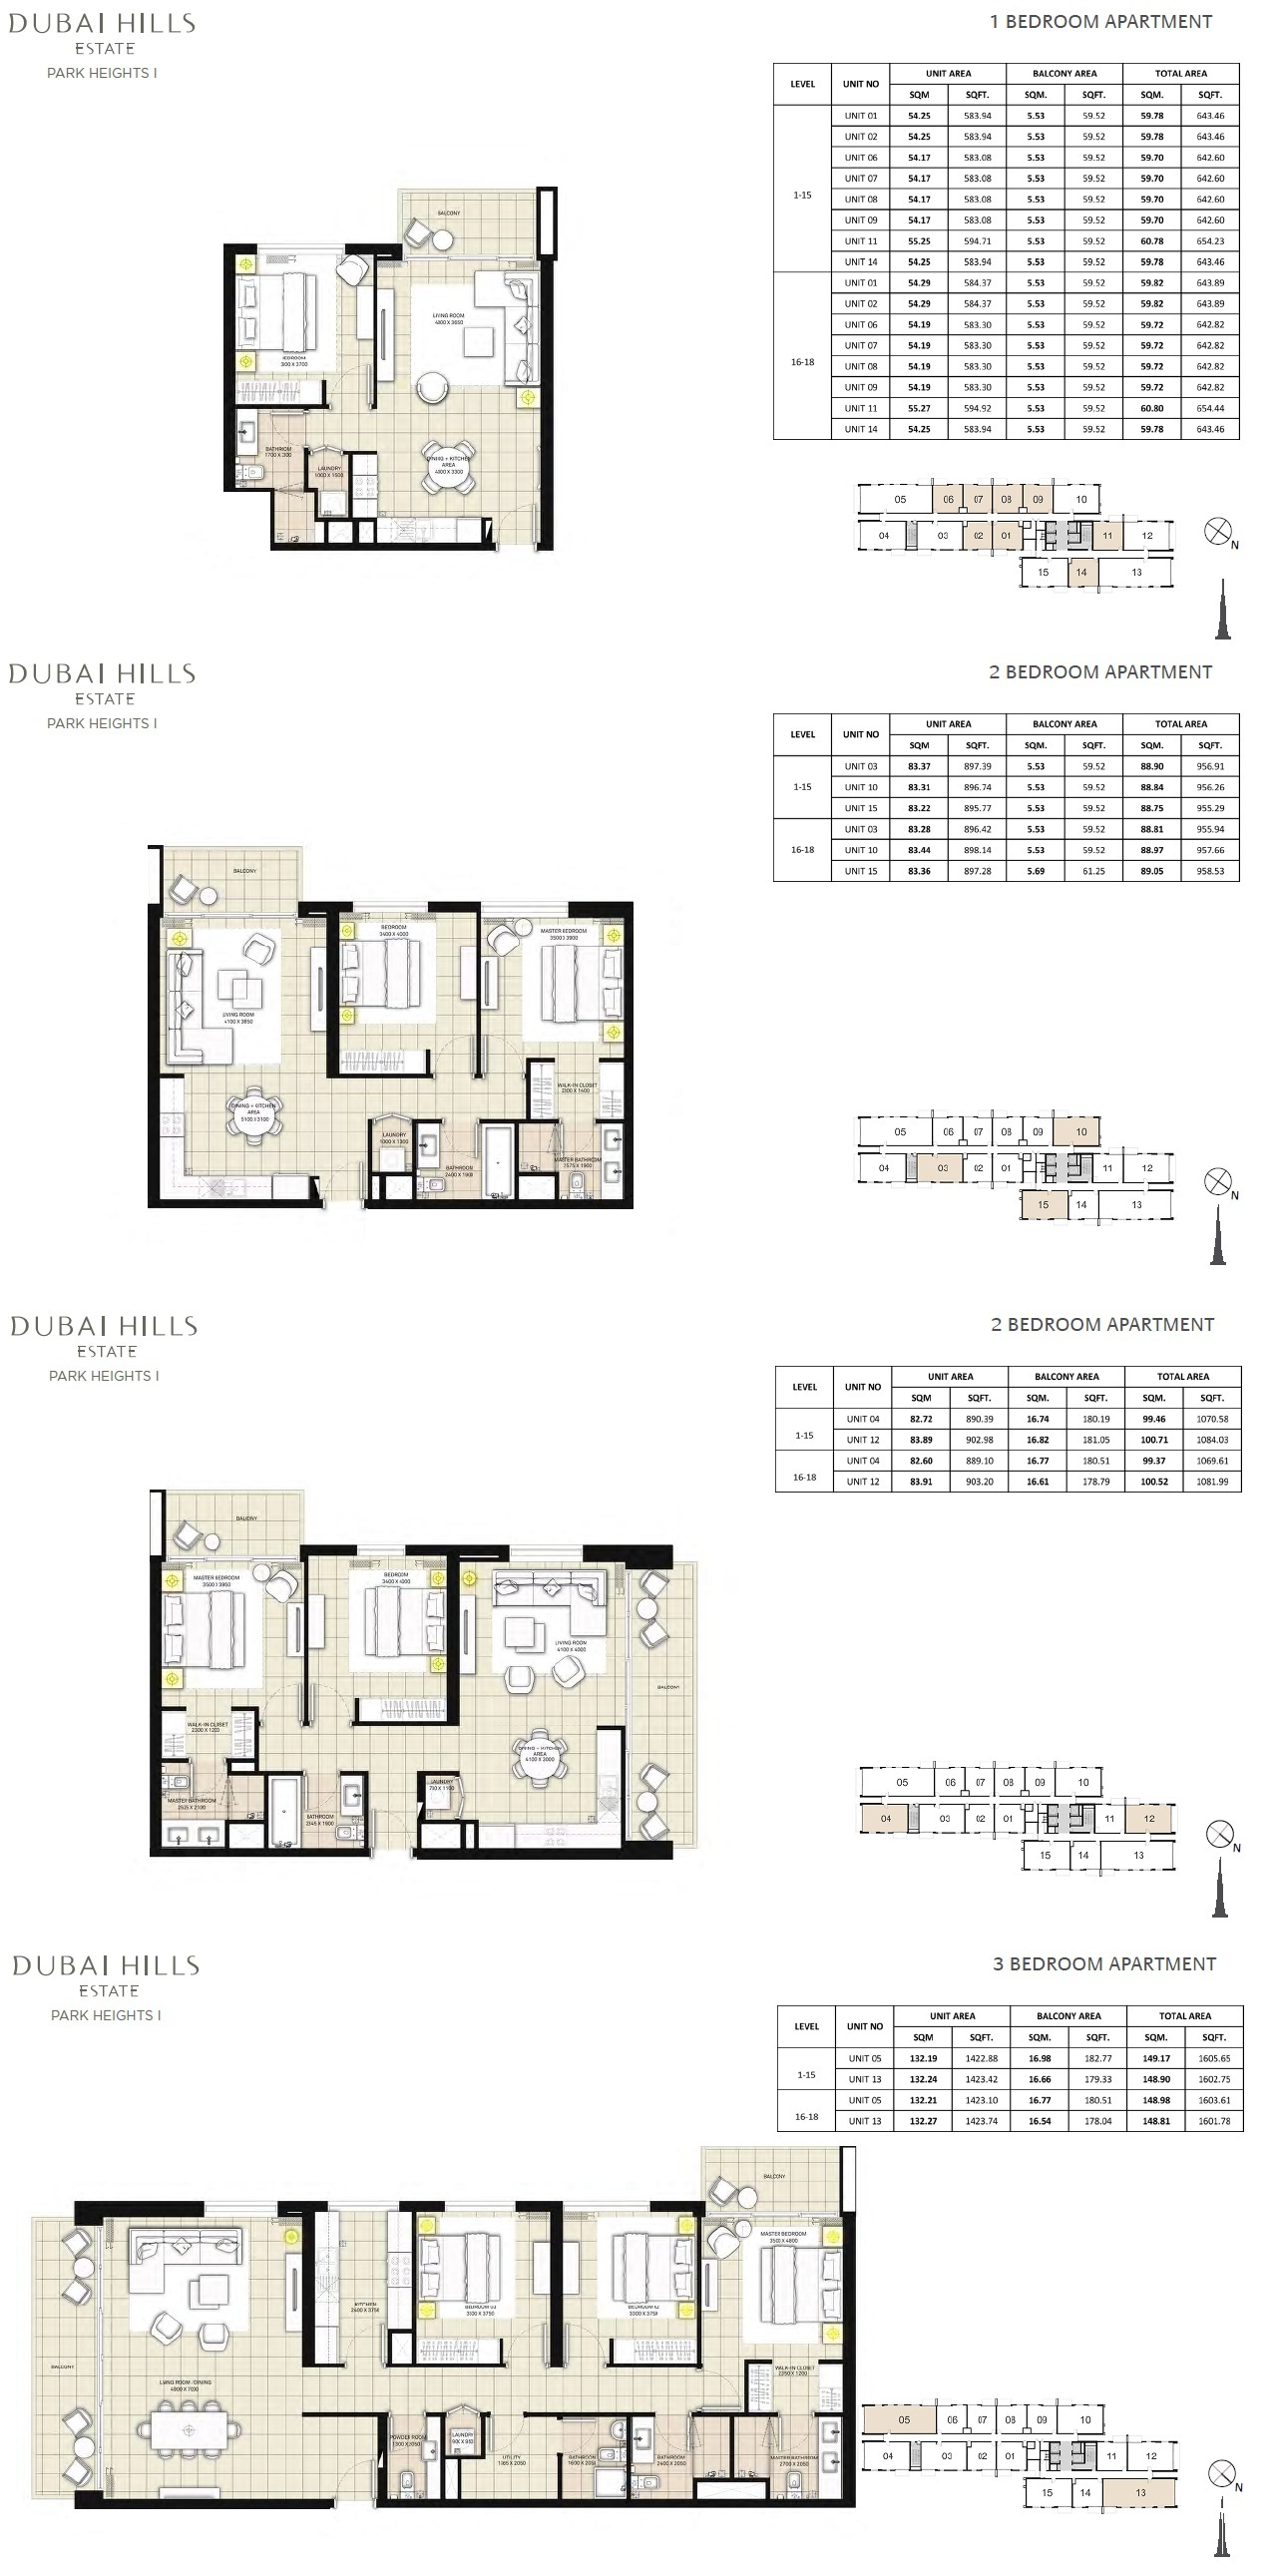 Emaar park heights dubai hills for Floor plans jumeirah heights